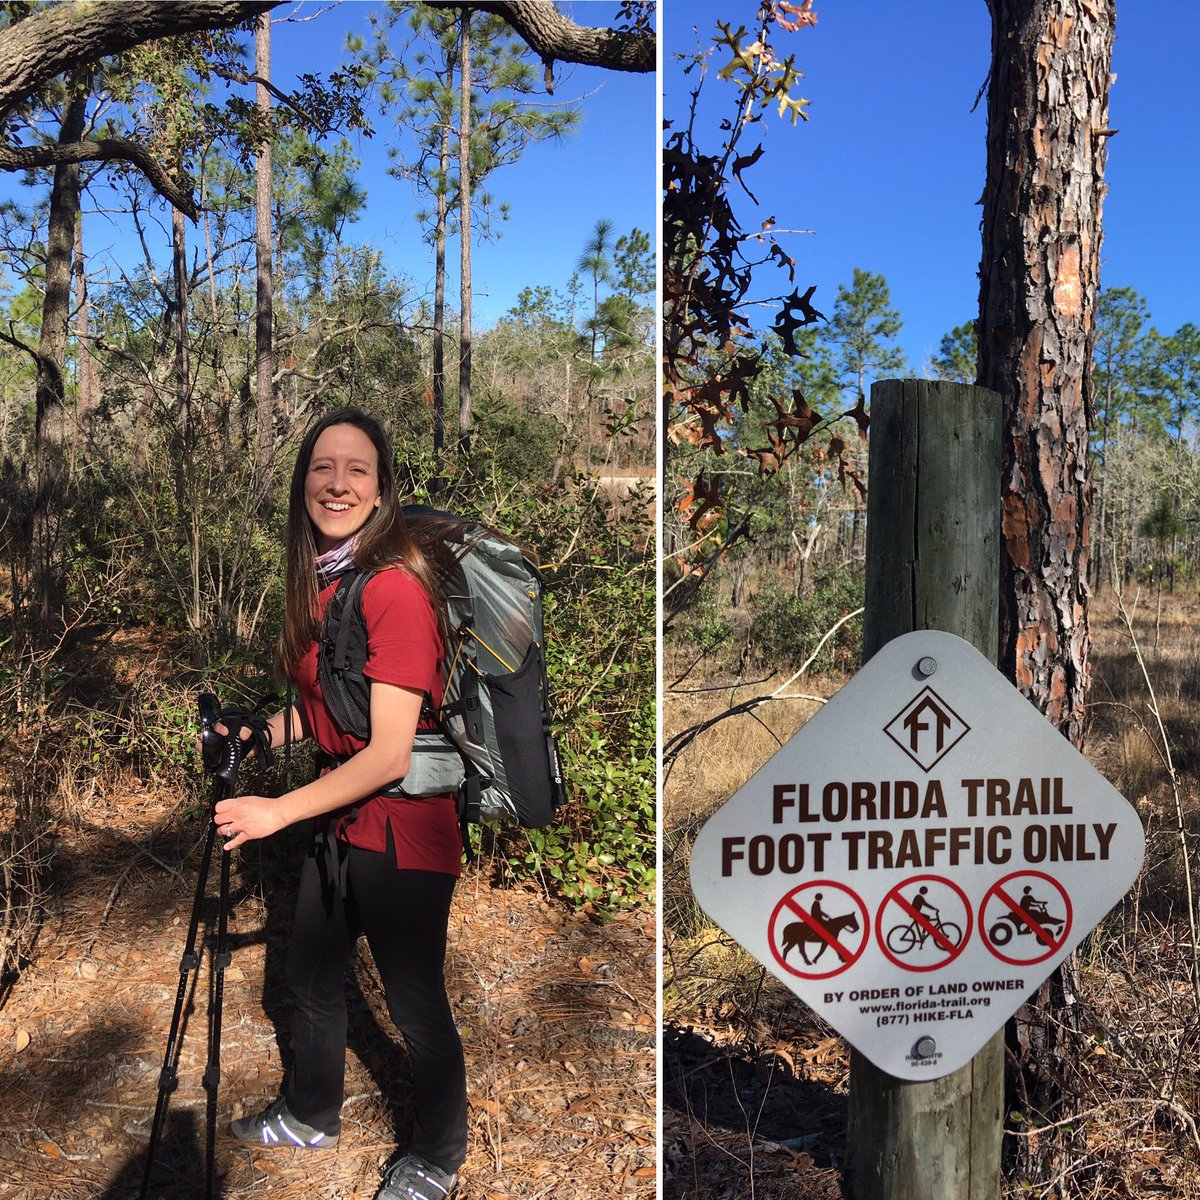 9.5 miles in the Withlacoochee Forest today - the weather was AMAZING! Can't wait to #optoutside with some #IMSchargers in our new hiking club! The IMS Outsiders will have their first meeting 2/3/20 from 2:30-4:30 in room 302. #takeahike <br>http://pic.twitter.com/wmgFtK9Mw4